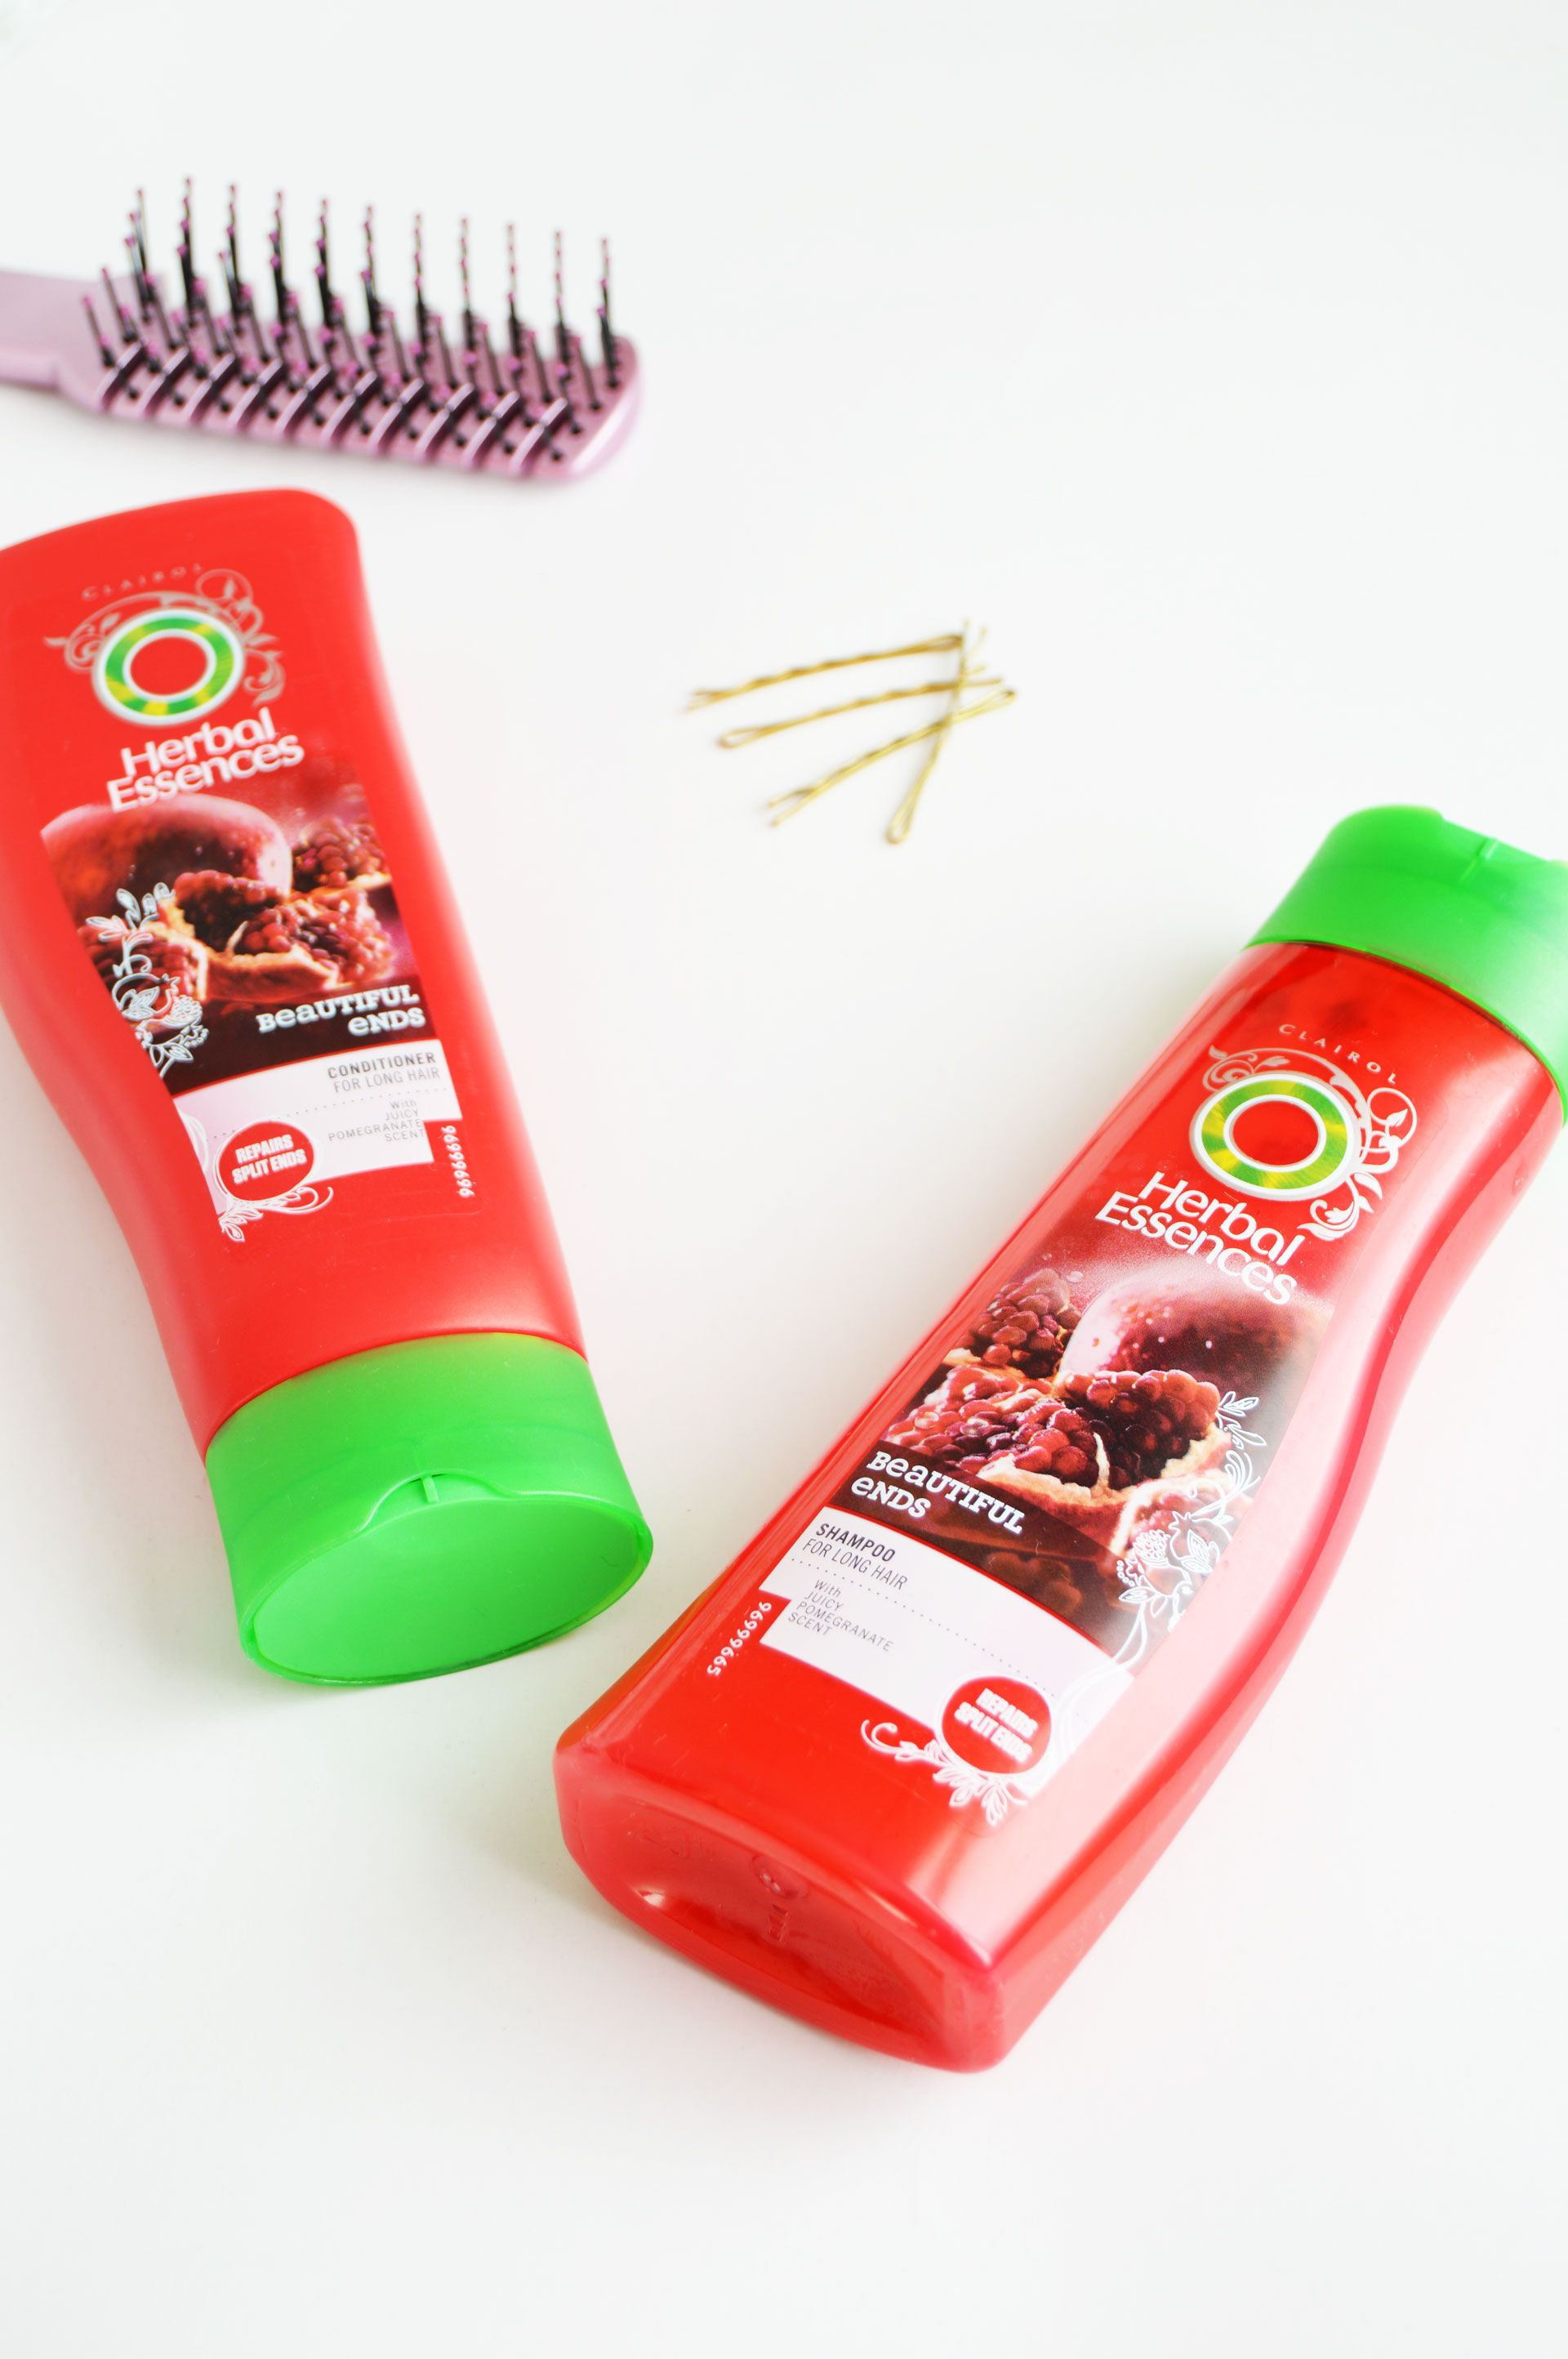 Herbal Essences Shampoo - Beautiful Ends Shampoo and Conditioner Review